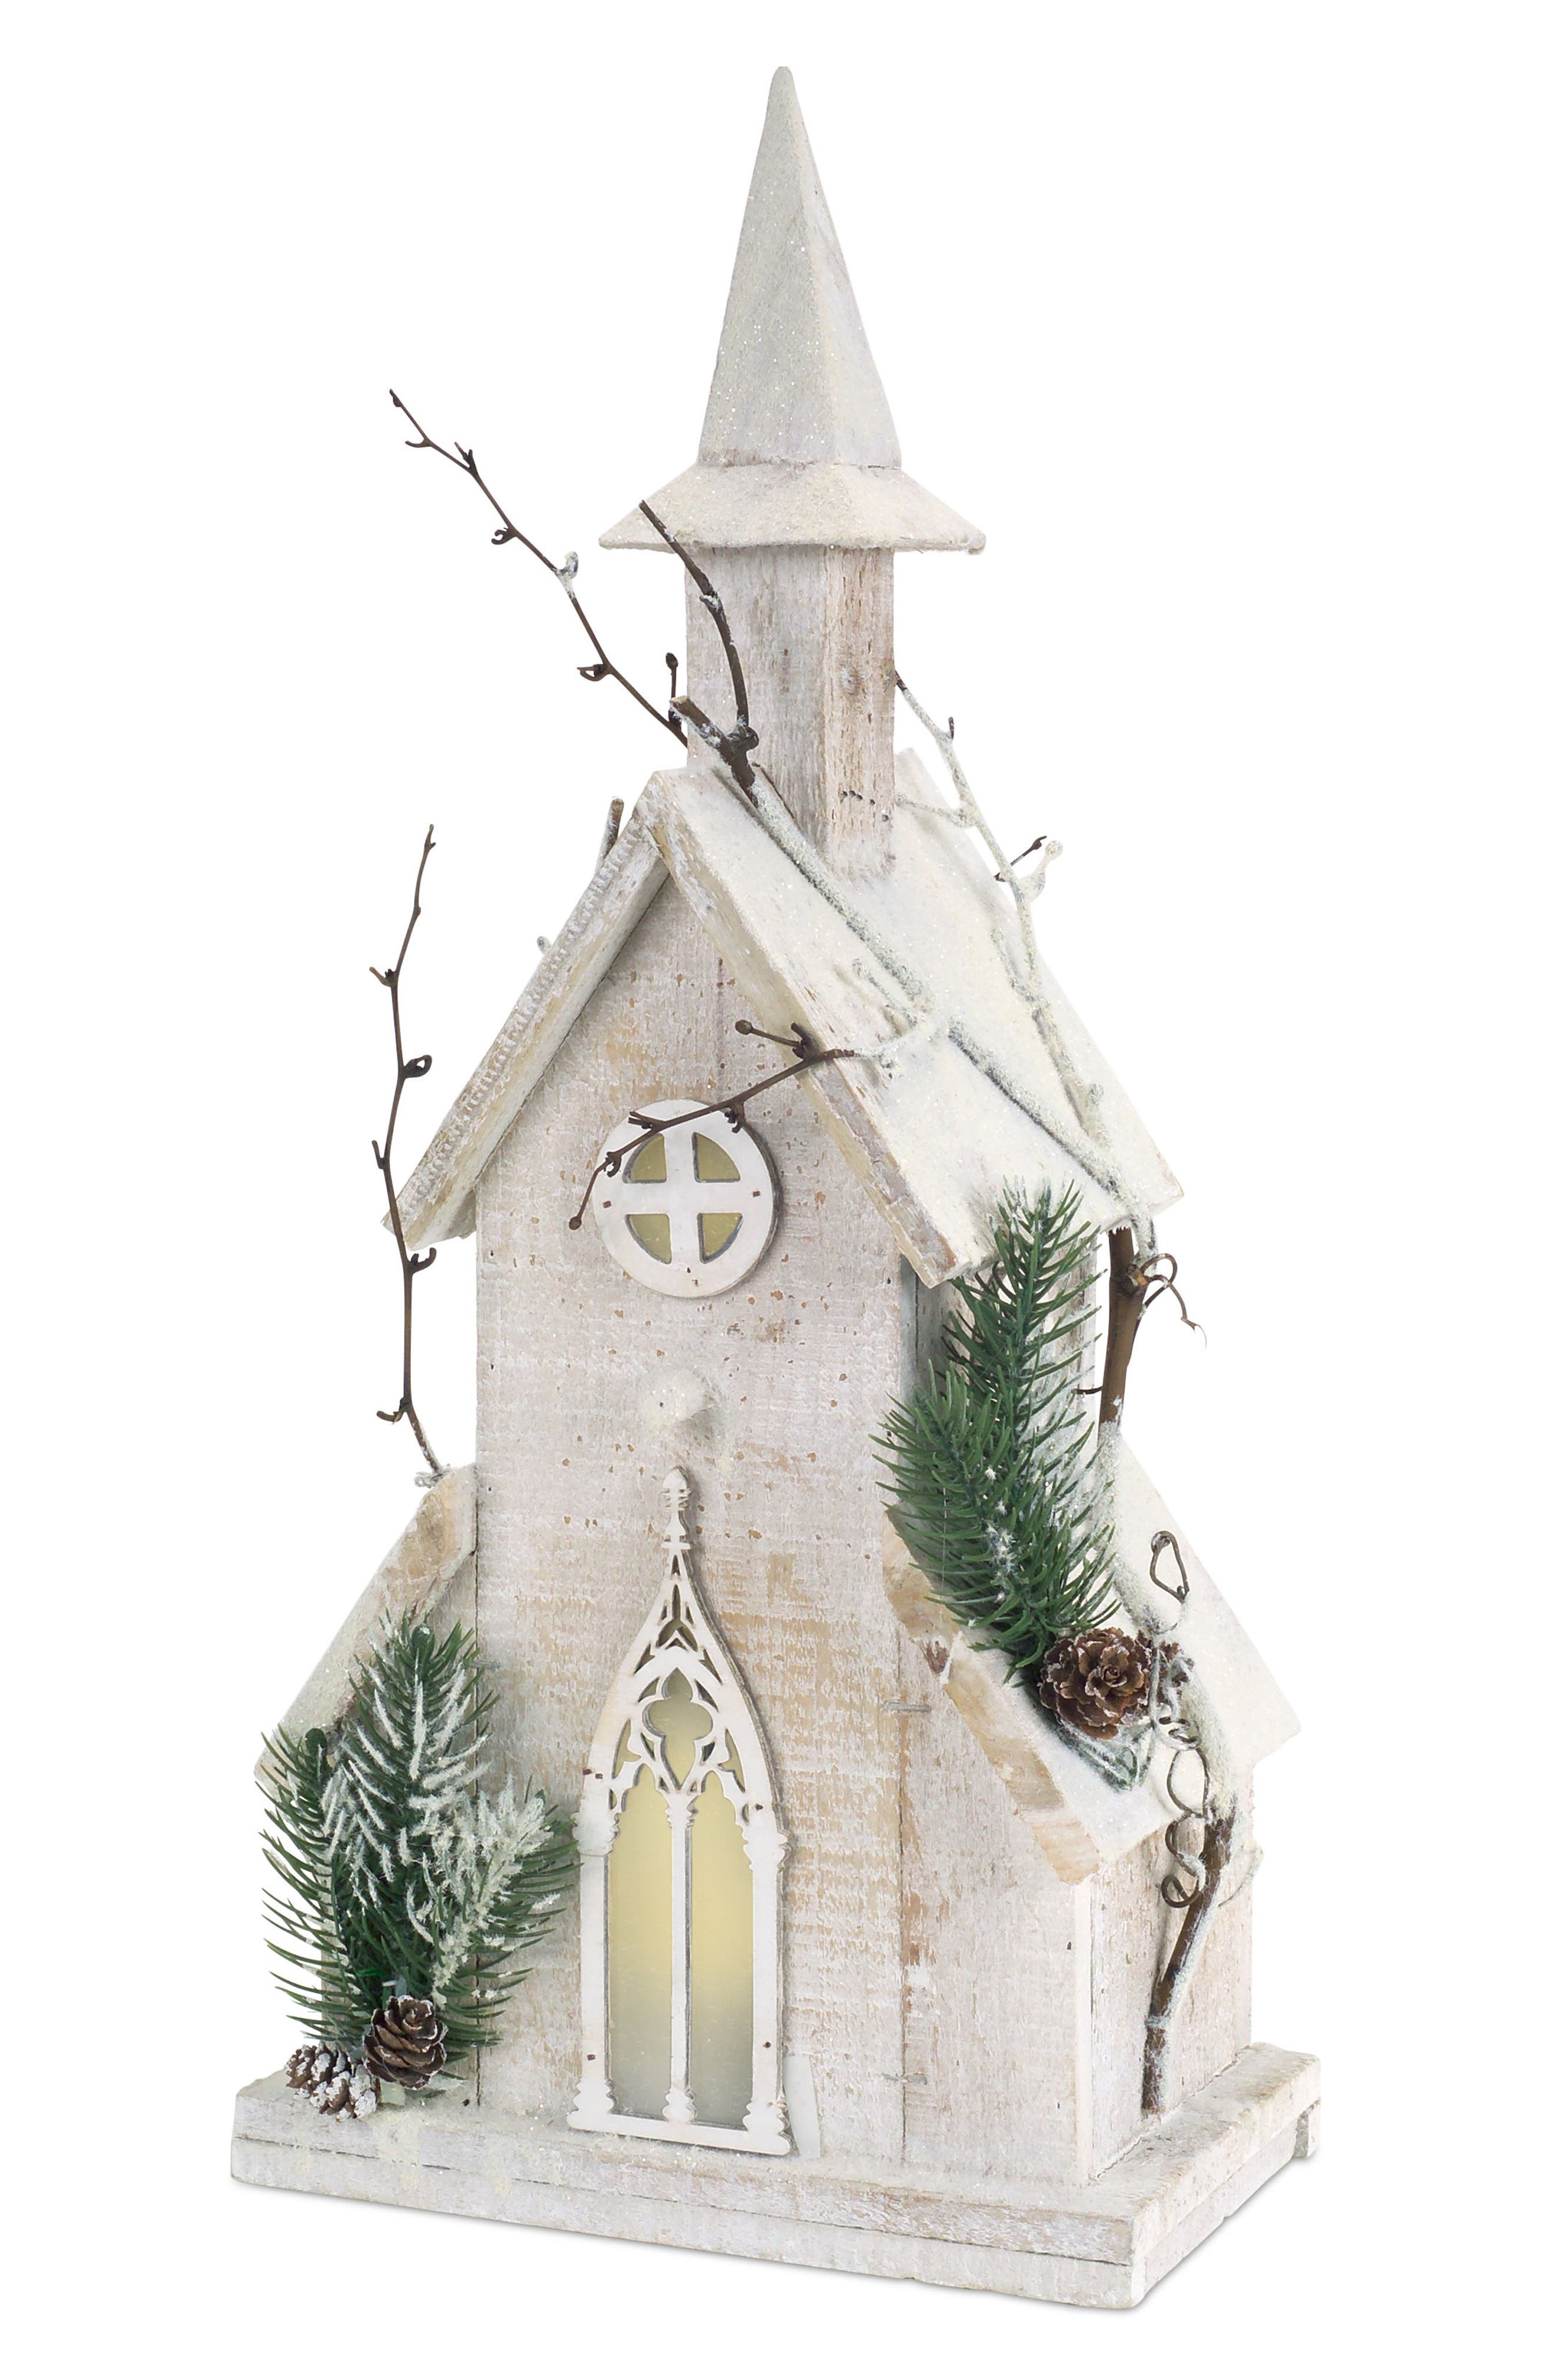 Melrose Gifts Light-Up Distressed Wooden Church